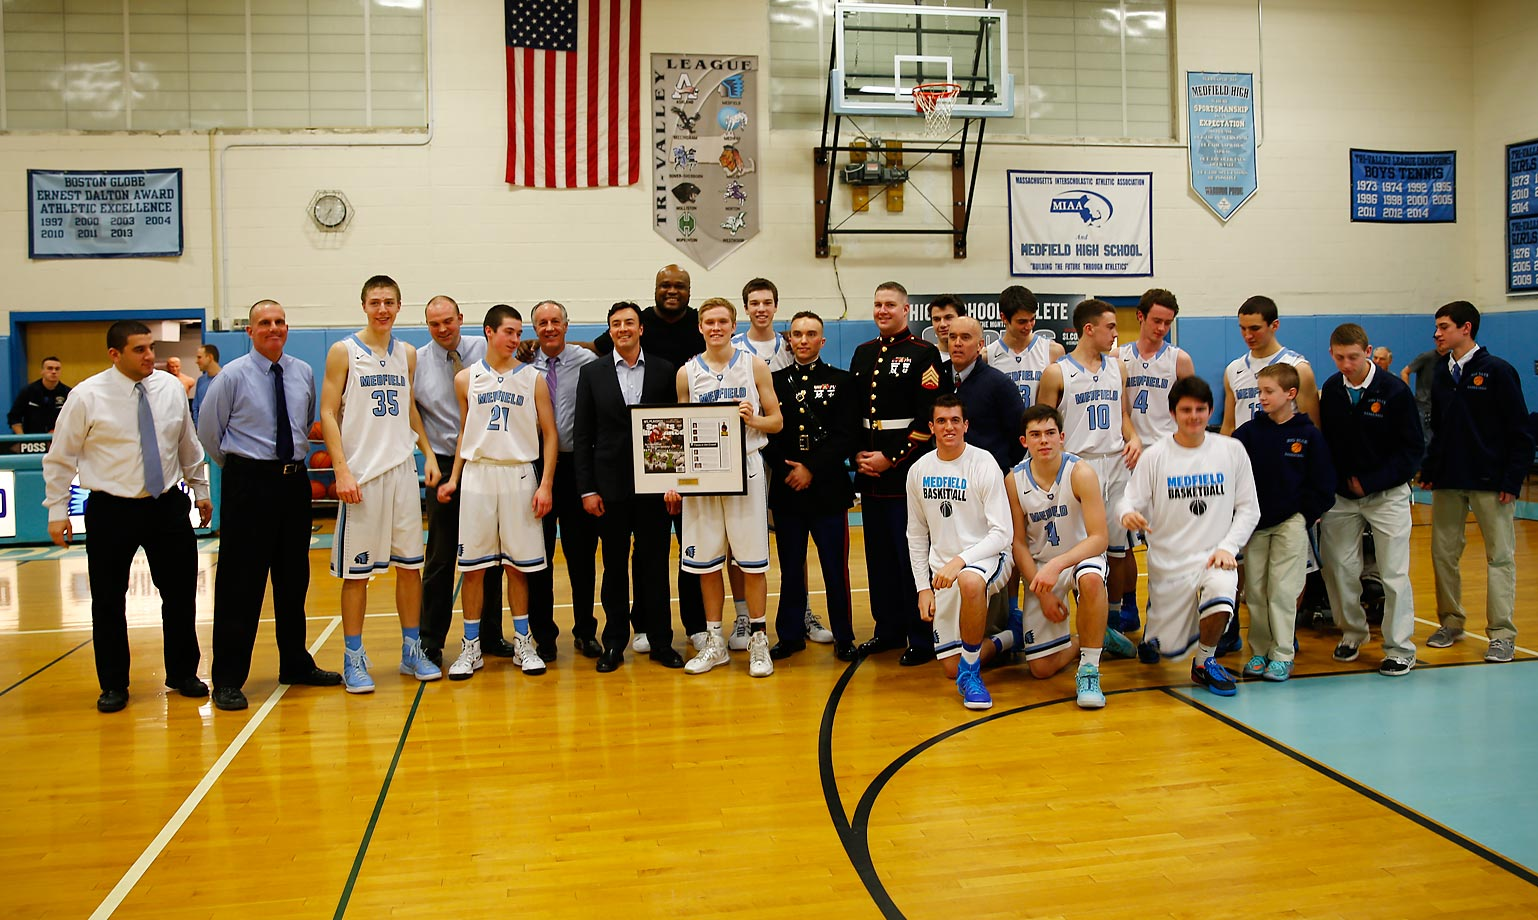 Jack's coach, Herb Grace, along with the rest of the varsity squad, joined him in the ceremony.